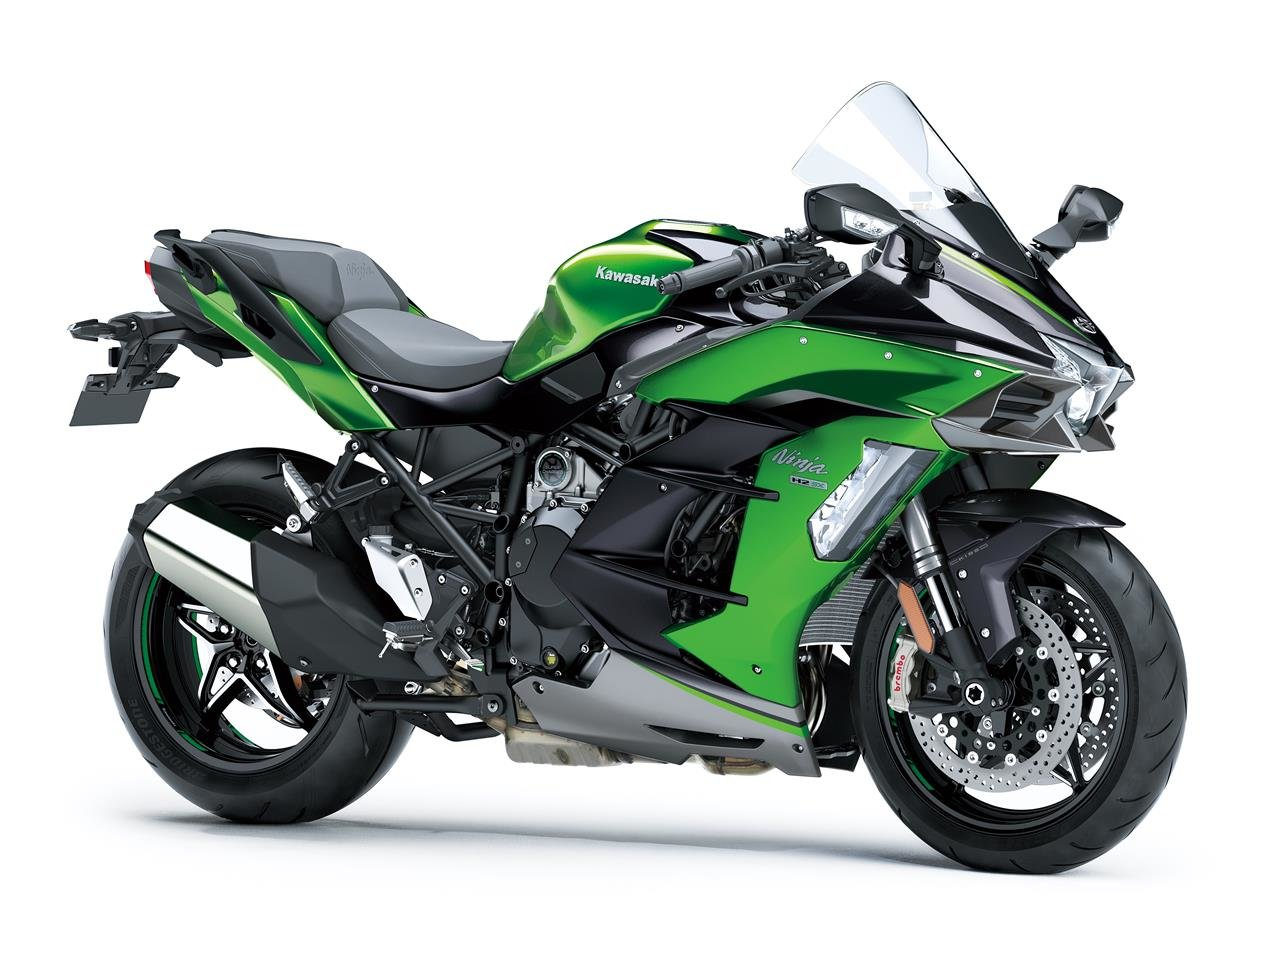 New 2020 Kawasaki Ninja H2 SX SE +*£1,000 PAID, FREE Deliver For Sale (picture 1 of 6)